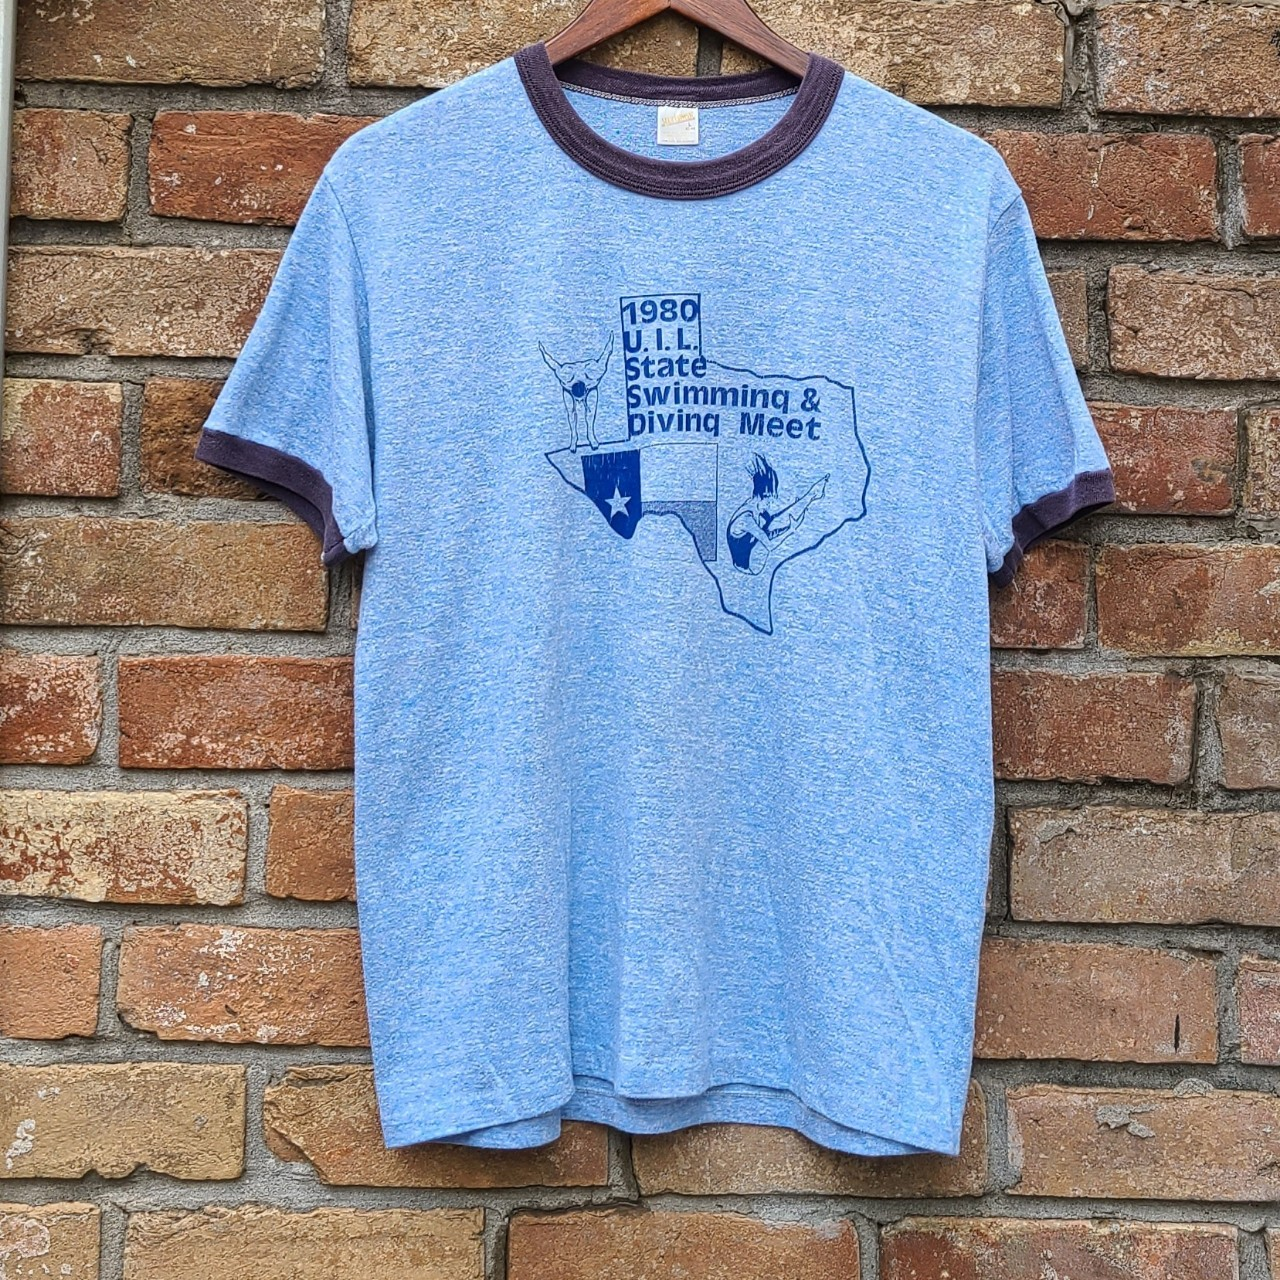 Product Image 1 - 🏊♂️🏊♀️ vintage 1980 Texas swimming